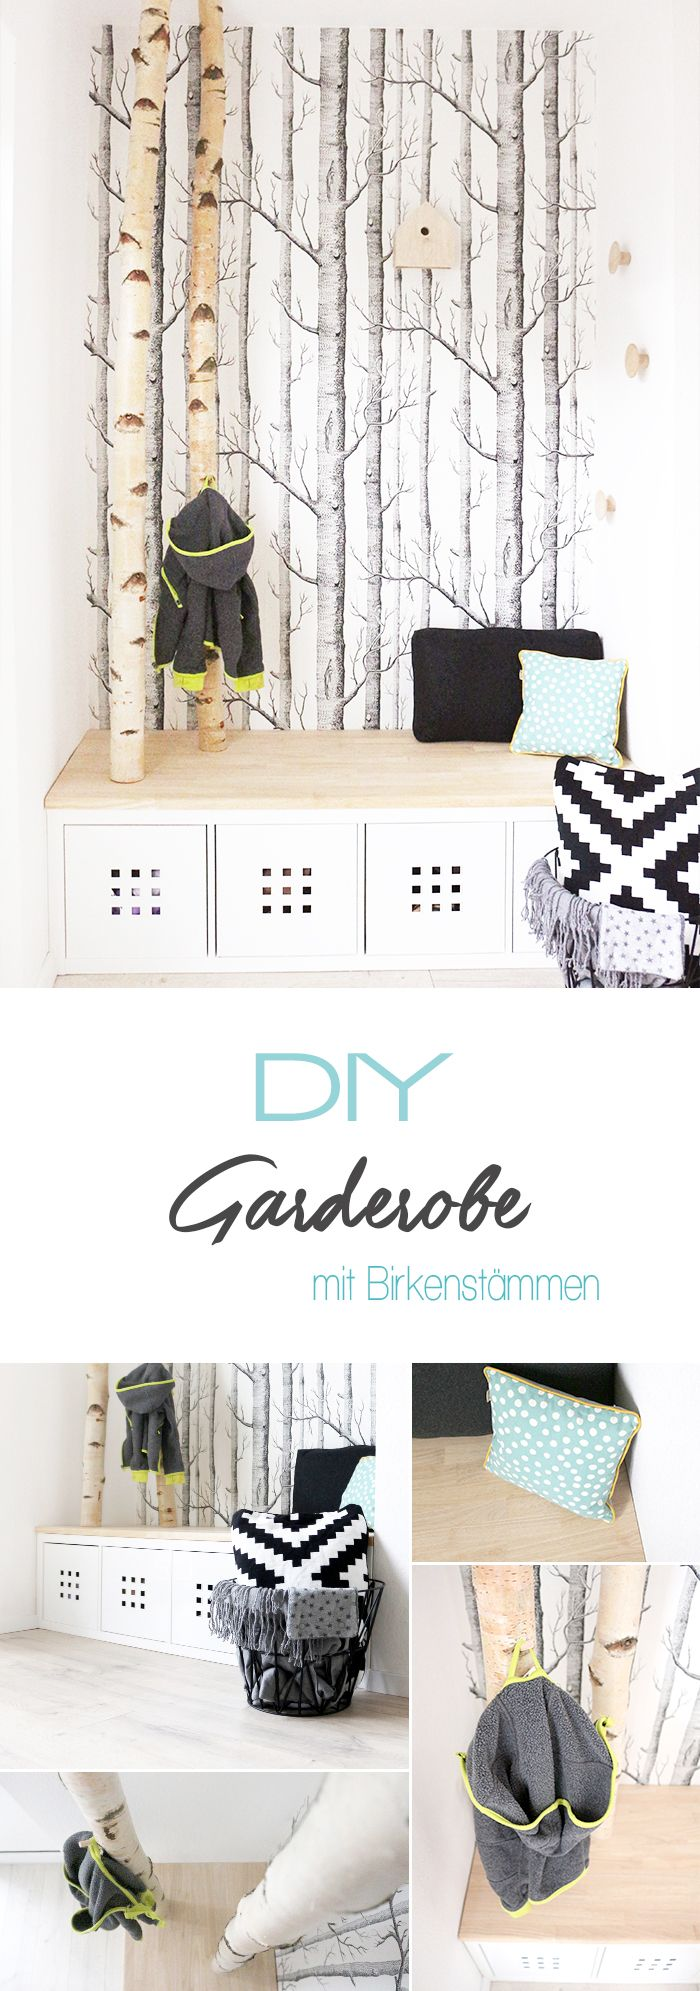 die besten 25 garderobe selber bauen ideen auf pinterest. Black Bedroom Furniture Sets. Home Design Ideas